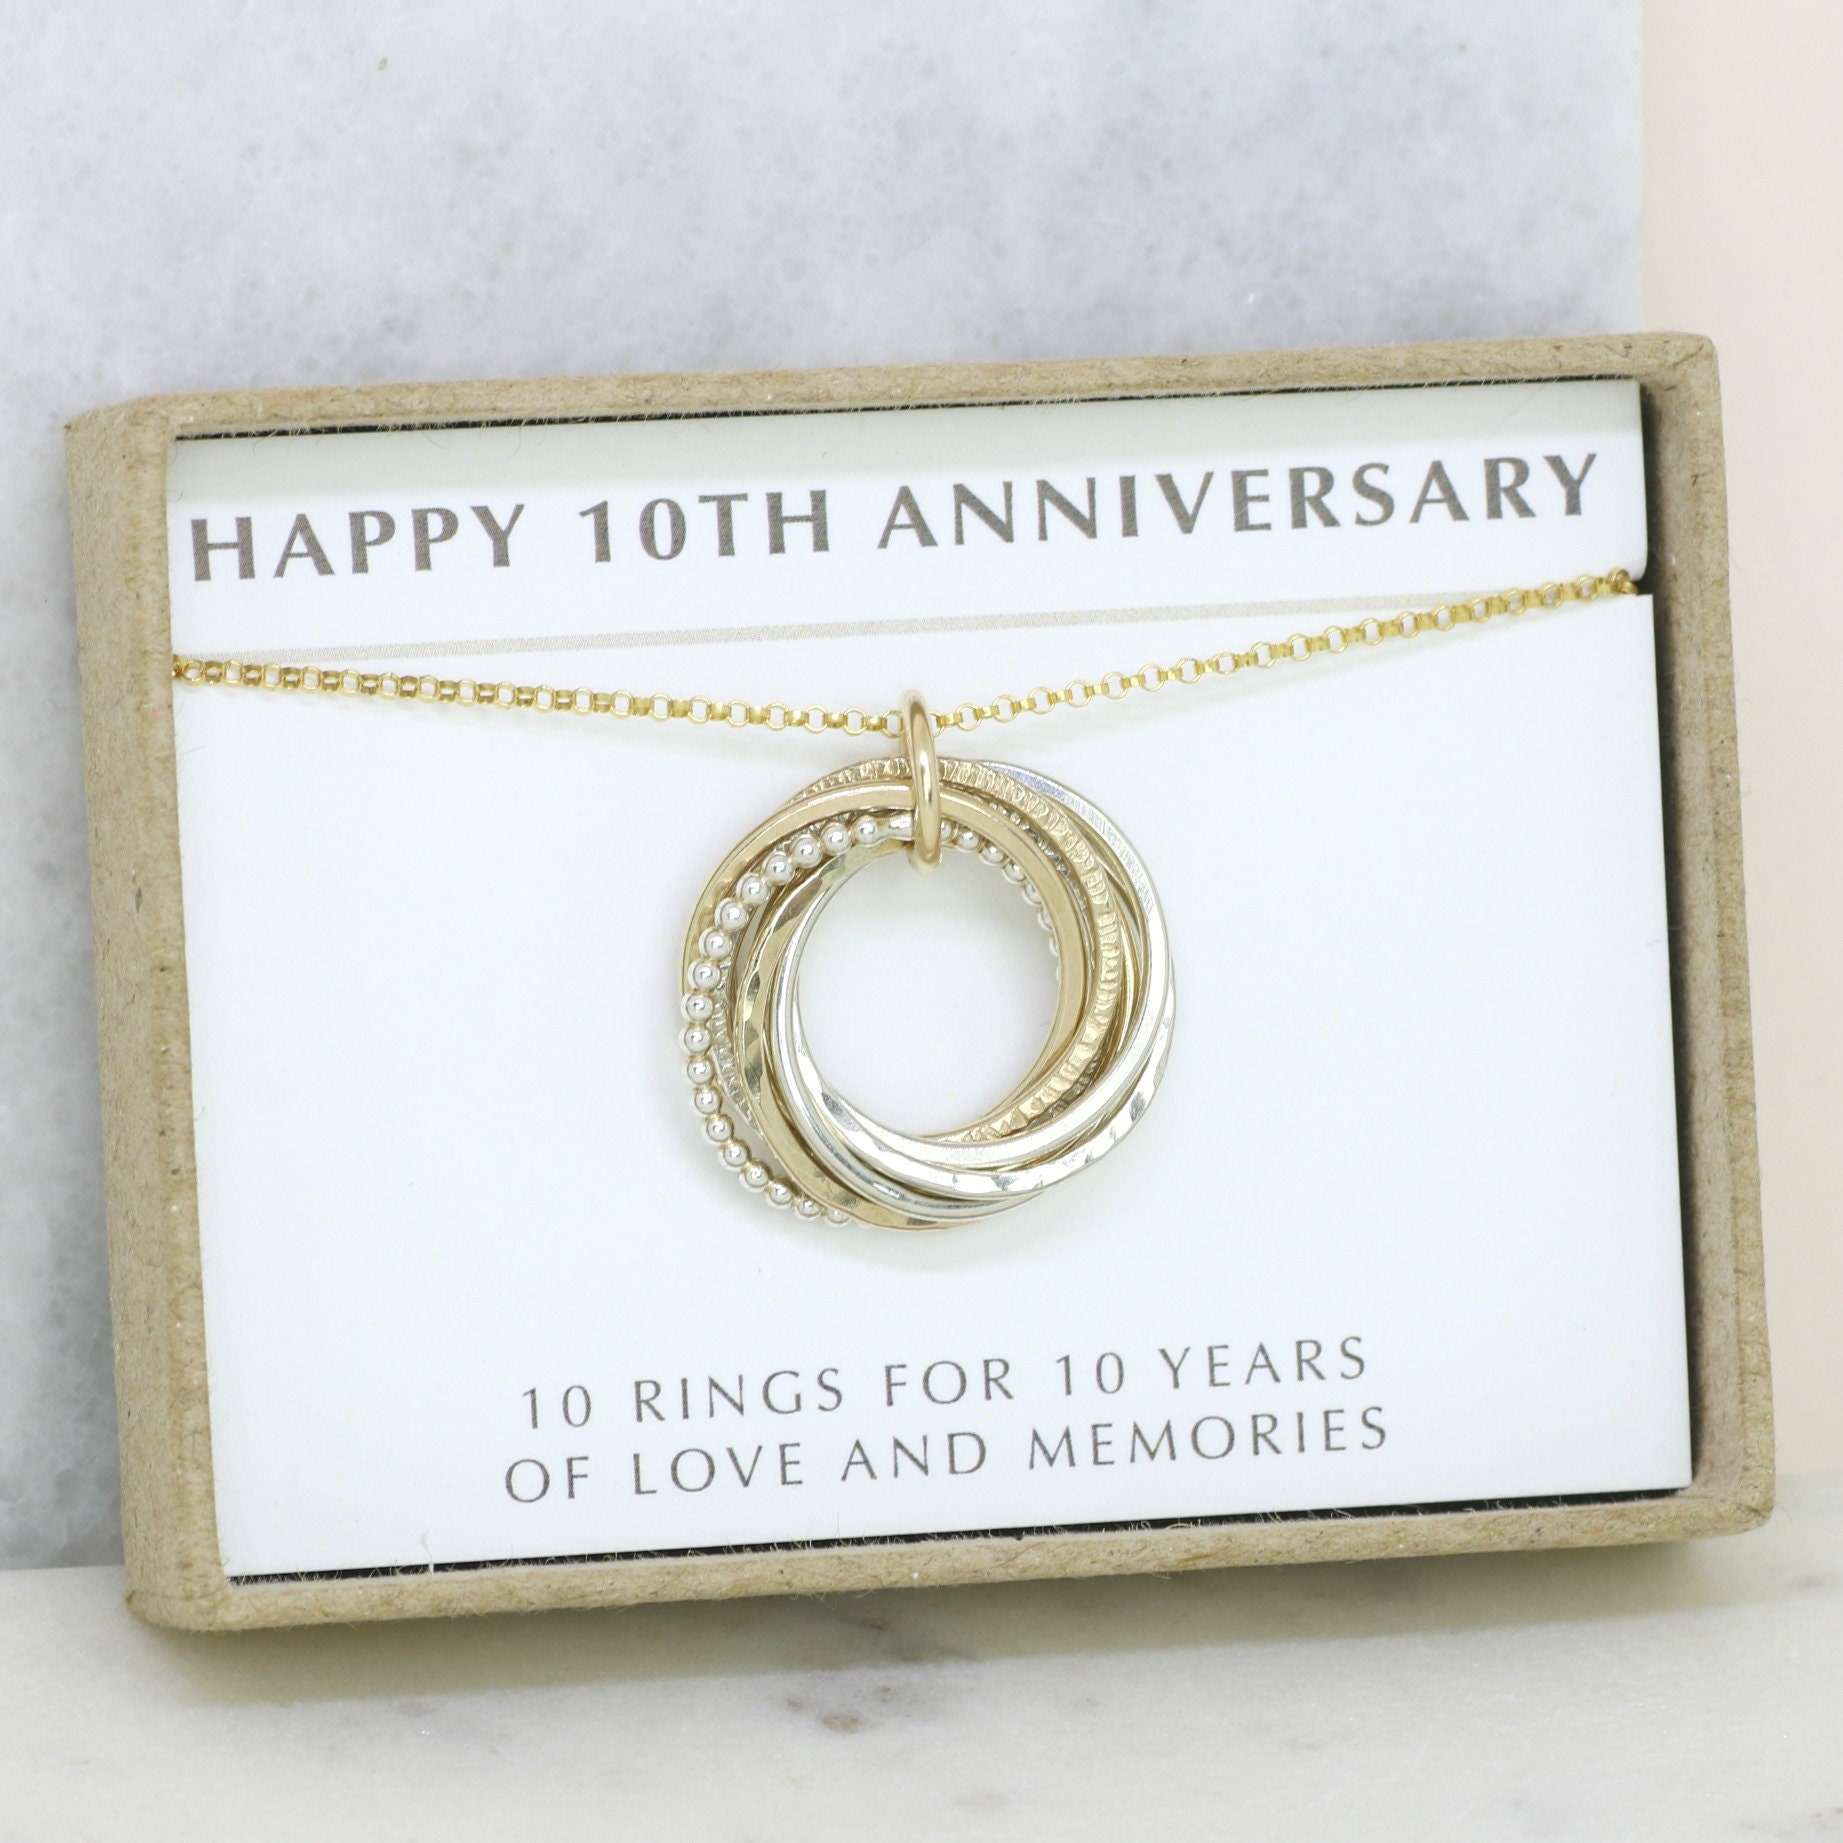 10th Wedding Anniversary Ideas: 10th Year Wedding Anniversary Gifts For Wife